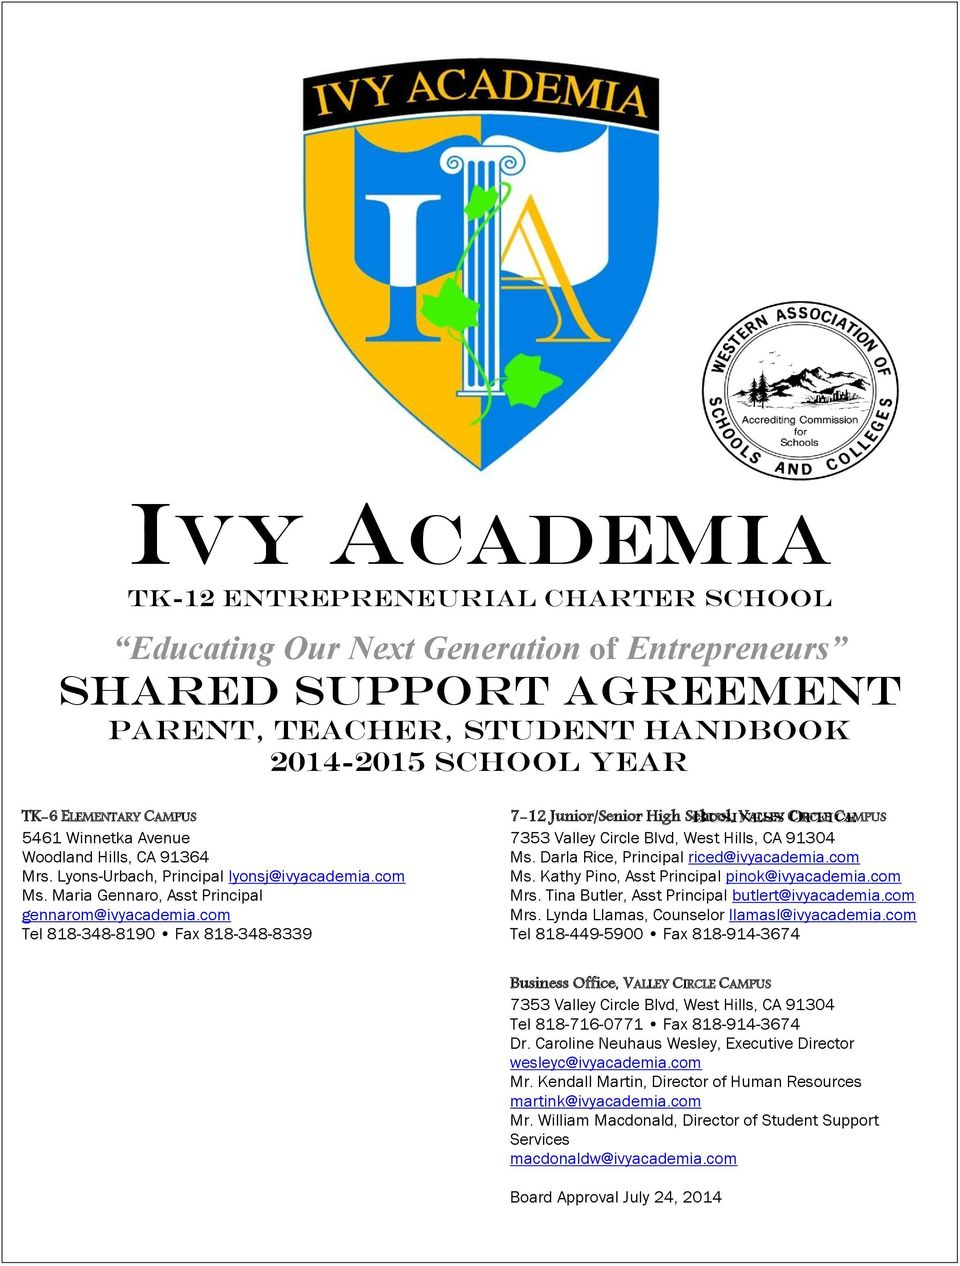 com Tel 818-348-8190 Fax 818-348-8339 7-12 Junior/Senior High School, BUSINESS VALLEY CIRCLE OFFICE CAMPUS 7353 Valley Circle Blvd, West Hills, CA 91304 Ms. Darla Rice, Principal riced@ivyacademia.